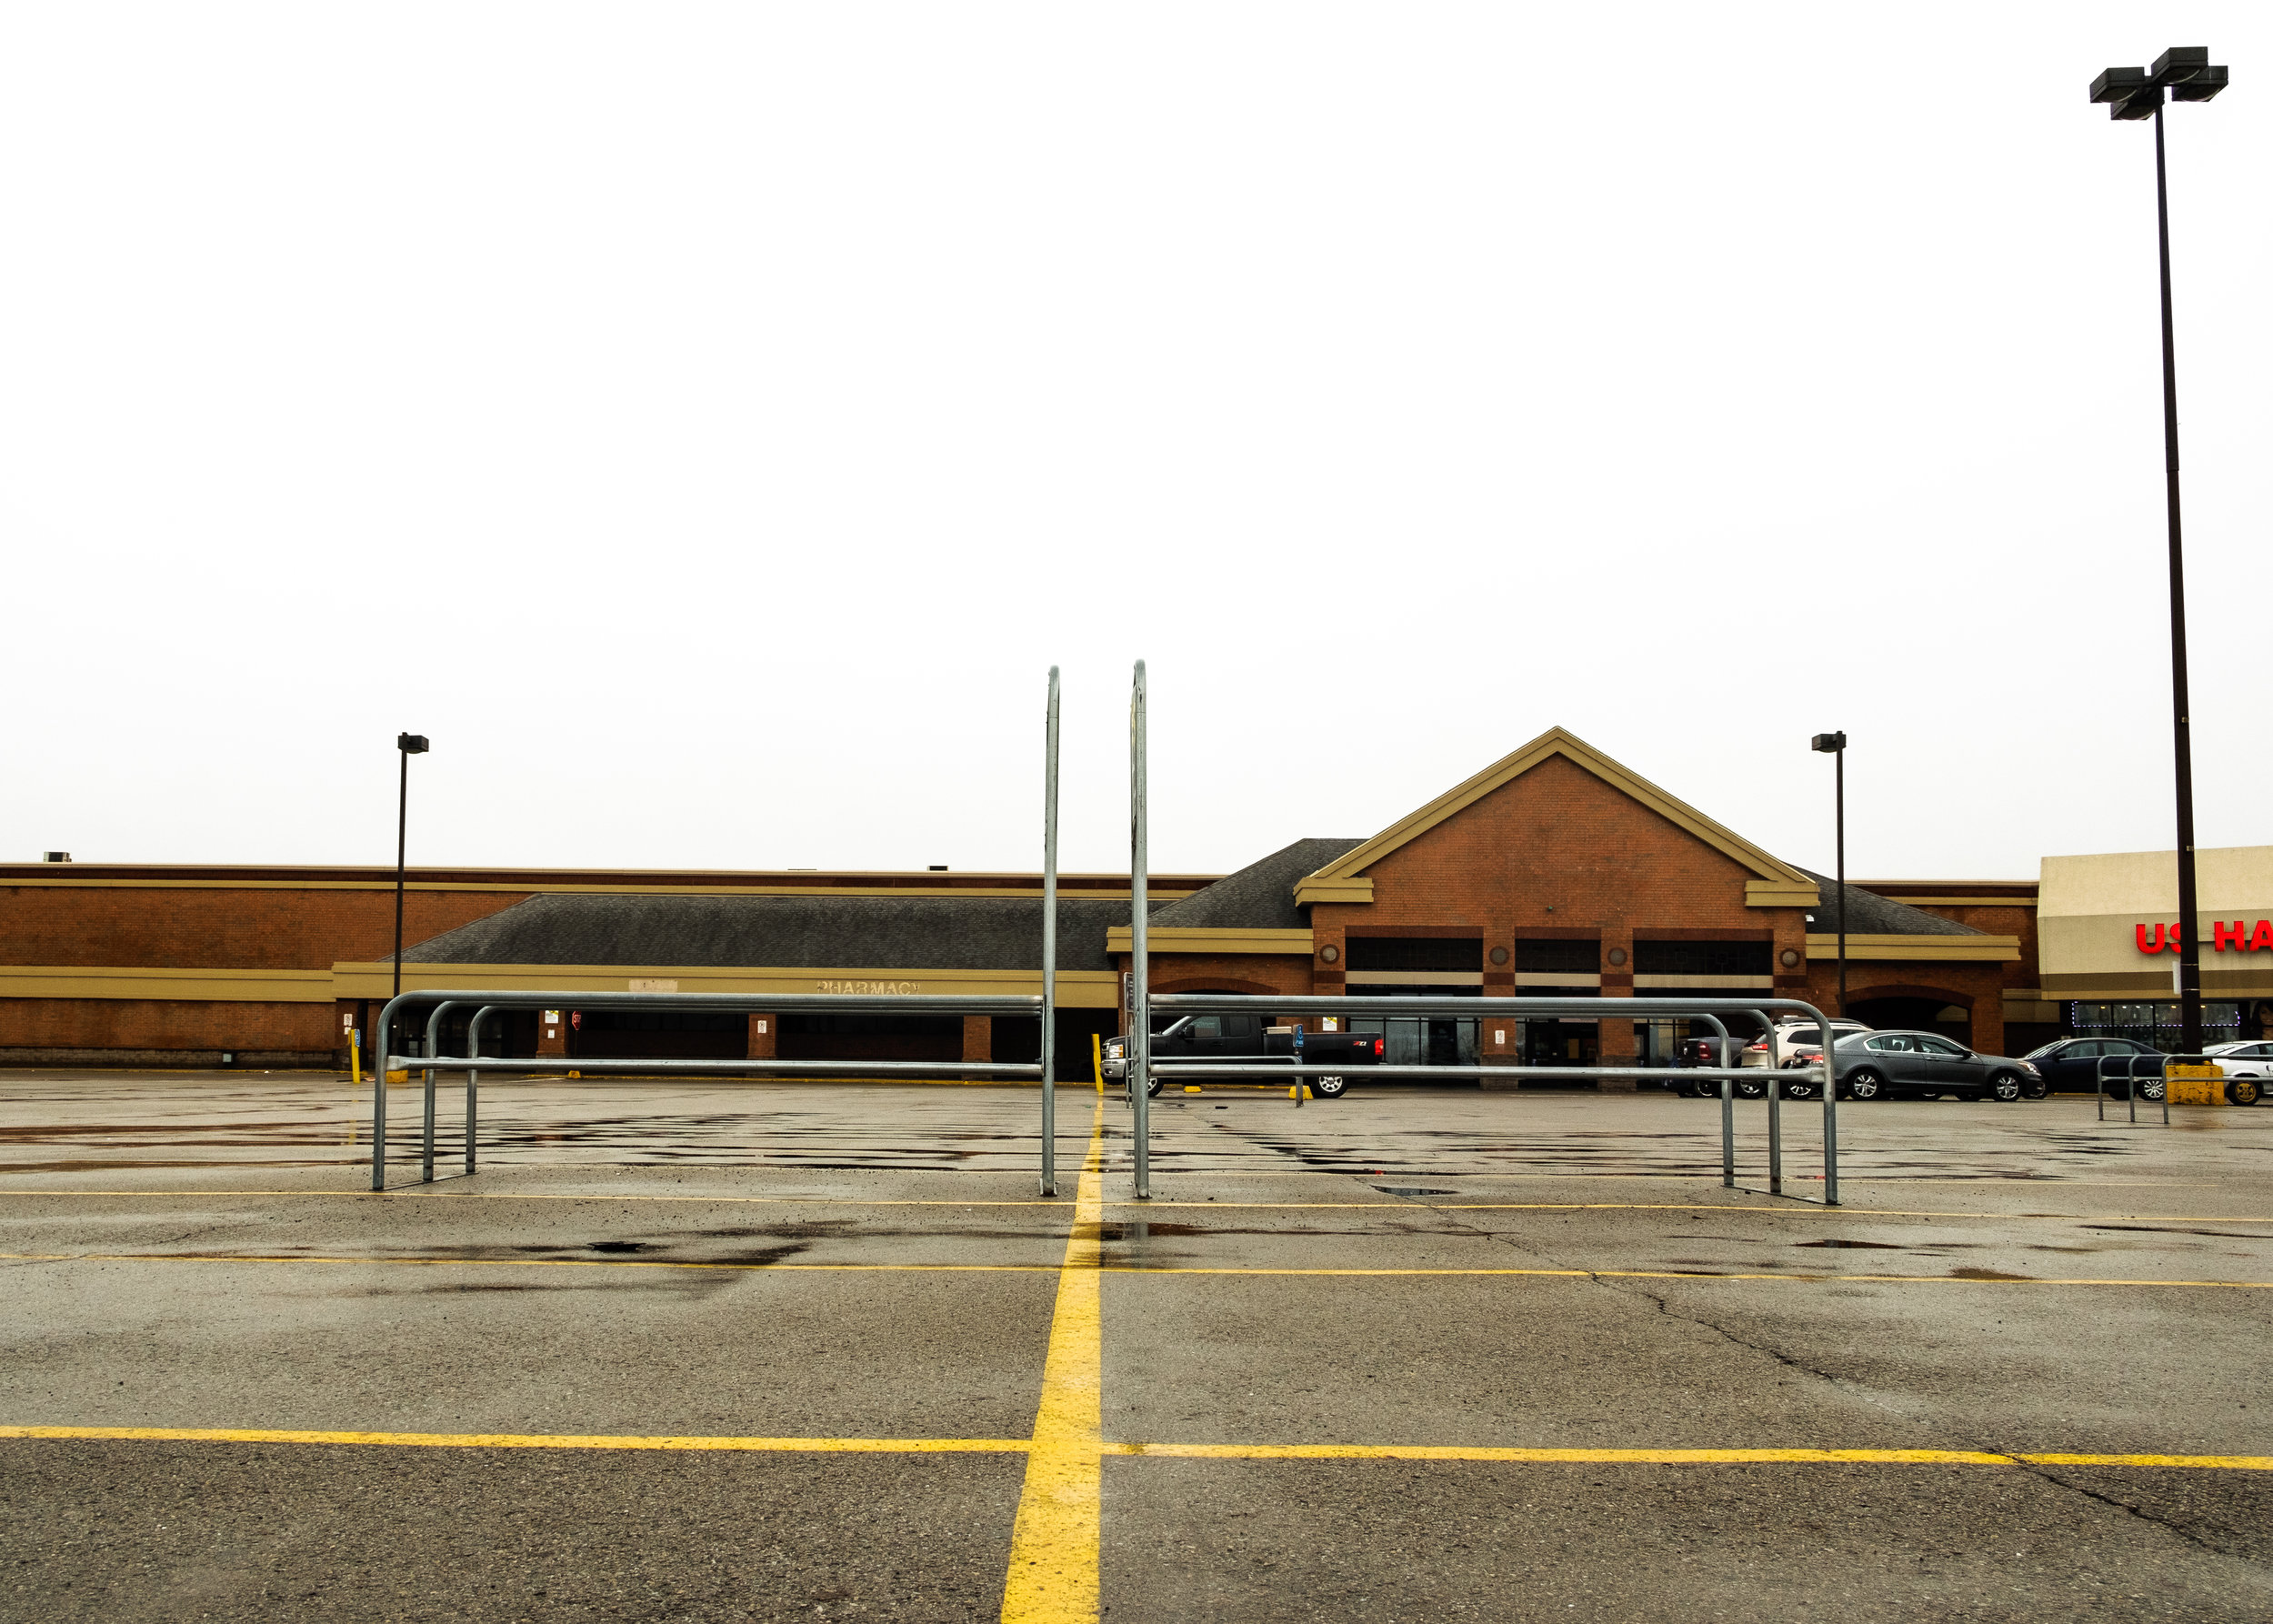 Since the Kroger in the Northern Lights Shopping Center in North Linden shut down on Dec. 28, 2018 the area has transformed into a food desert. Now the community's only options for food include an array of fast food chains, dollar generals, and convenience stores where fresh produce is either far and few between or extraordinarily expensive.